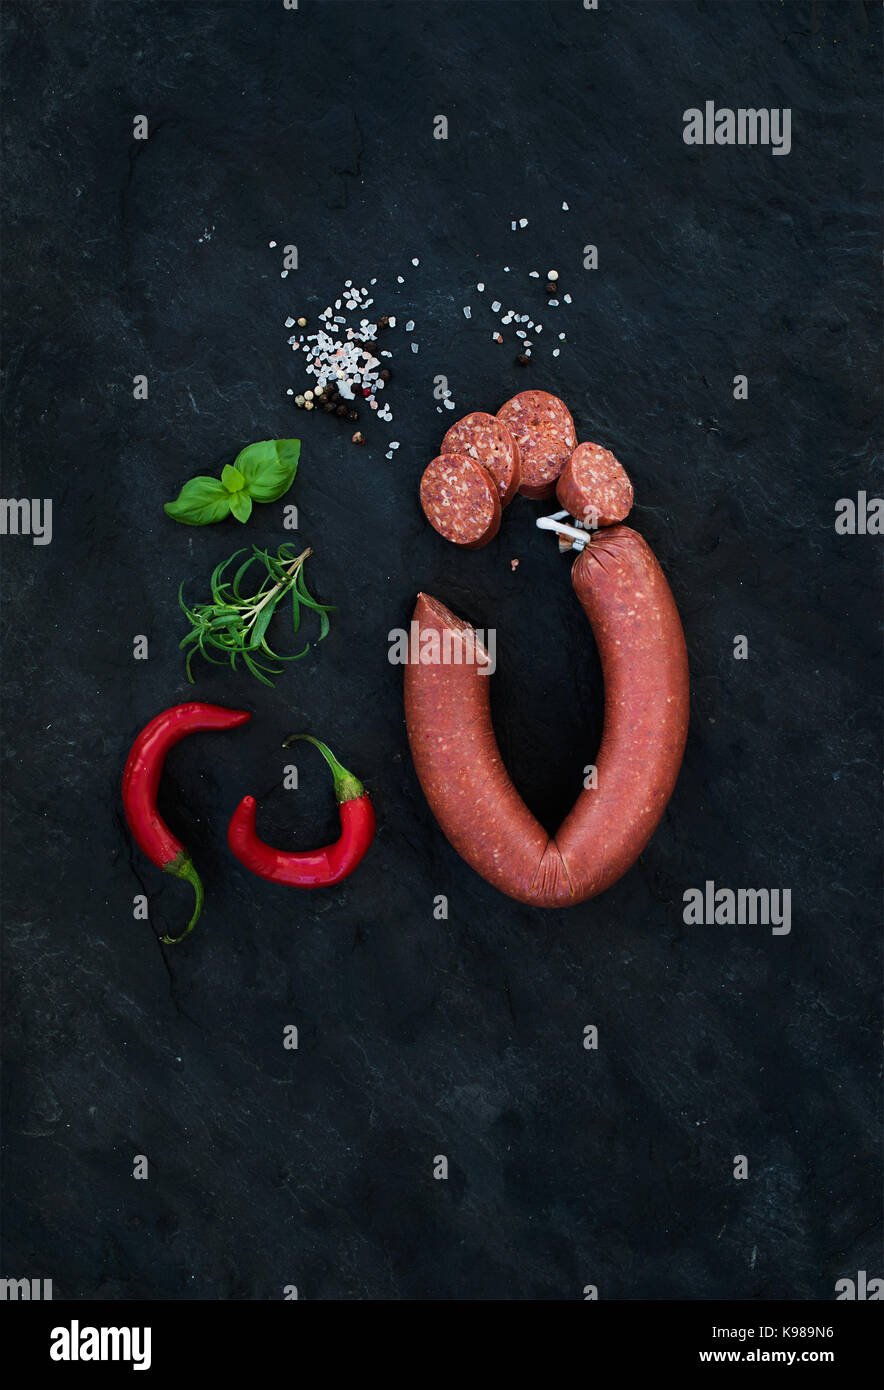 Smoked salami sausage with rosemary, chili pepper, basil and salt over black slate stone background, top view. - Stock Image